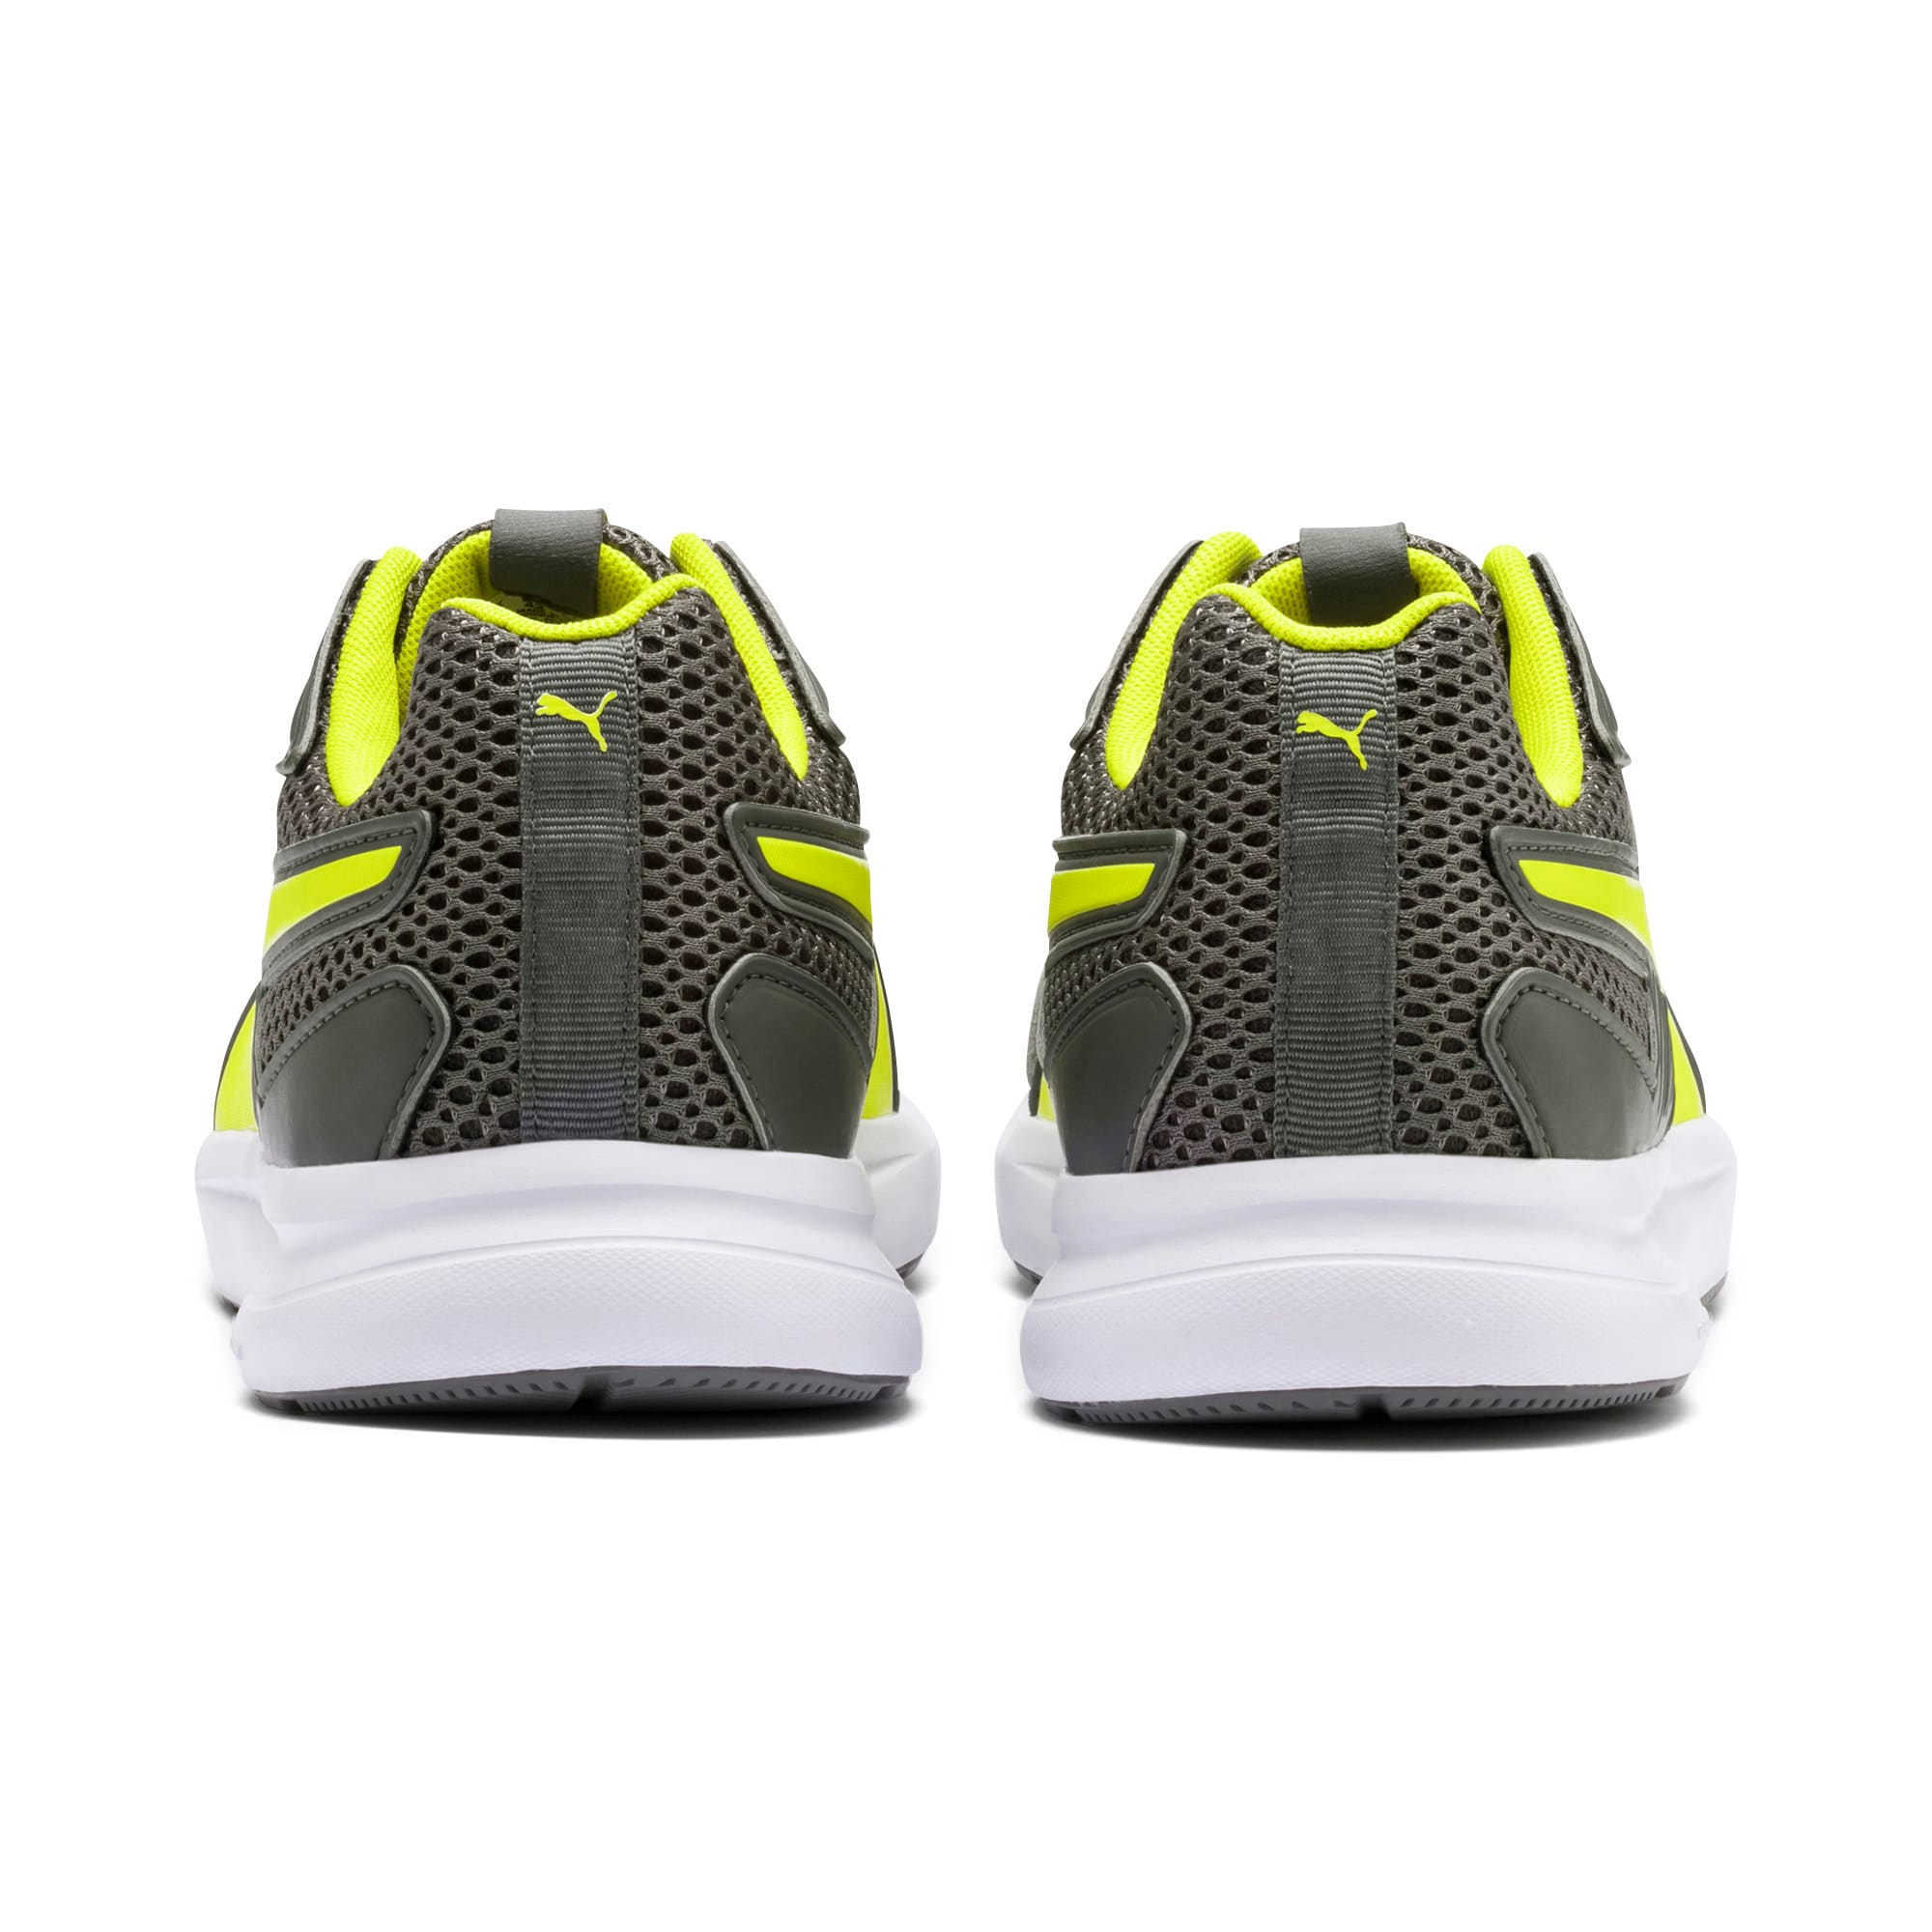 Thumbnail 3 of Escaper Training Shoes, CASTLEROCK-Nrgy Yellow-White, medium-IND